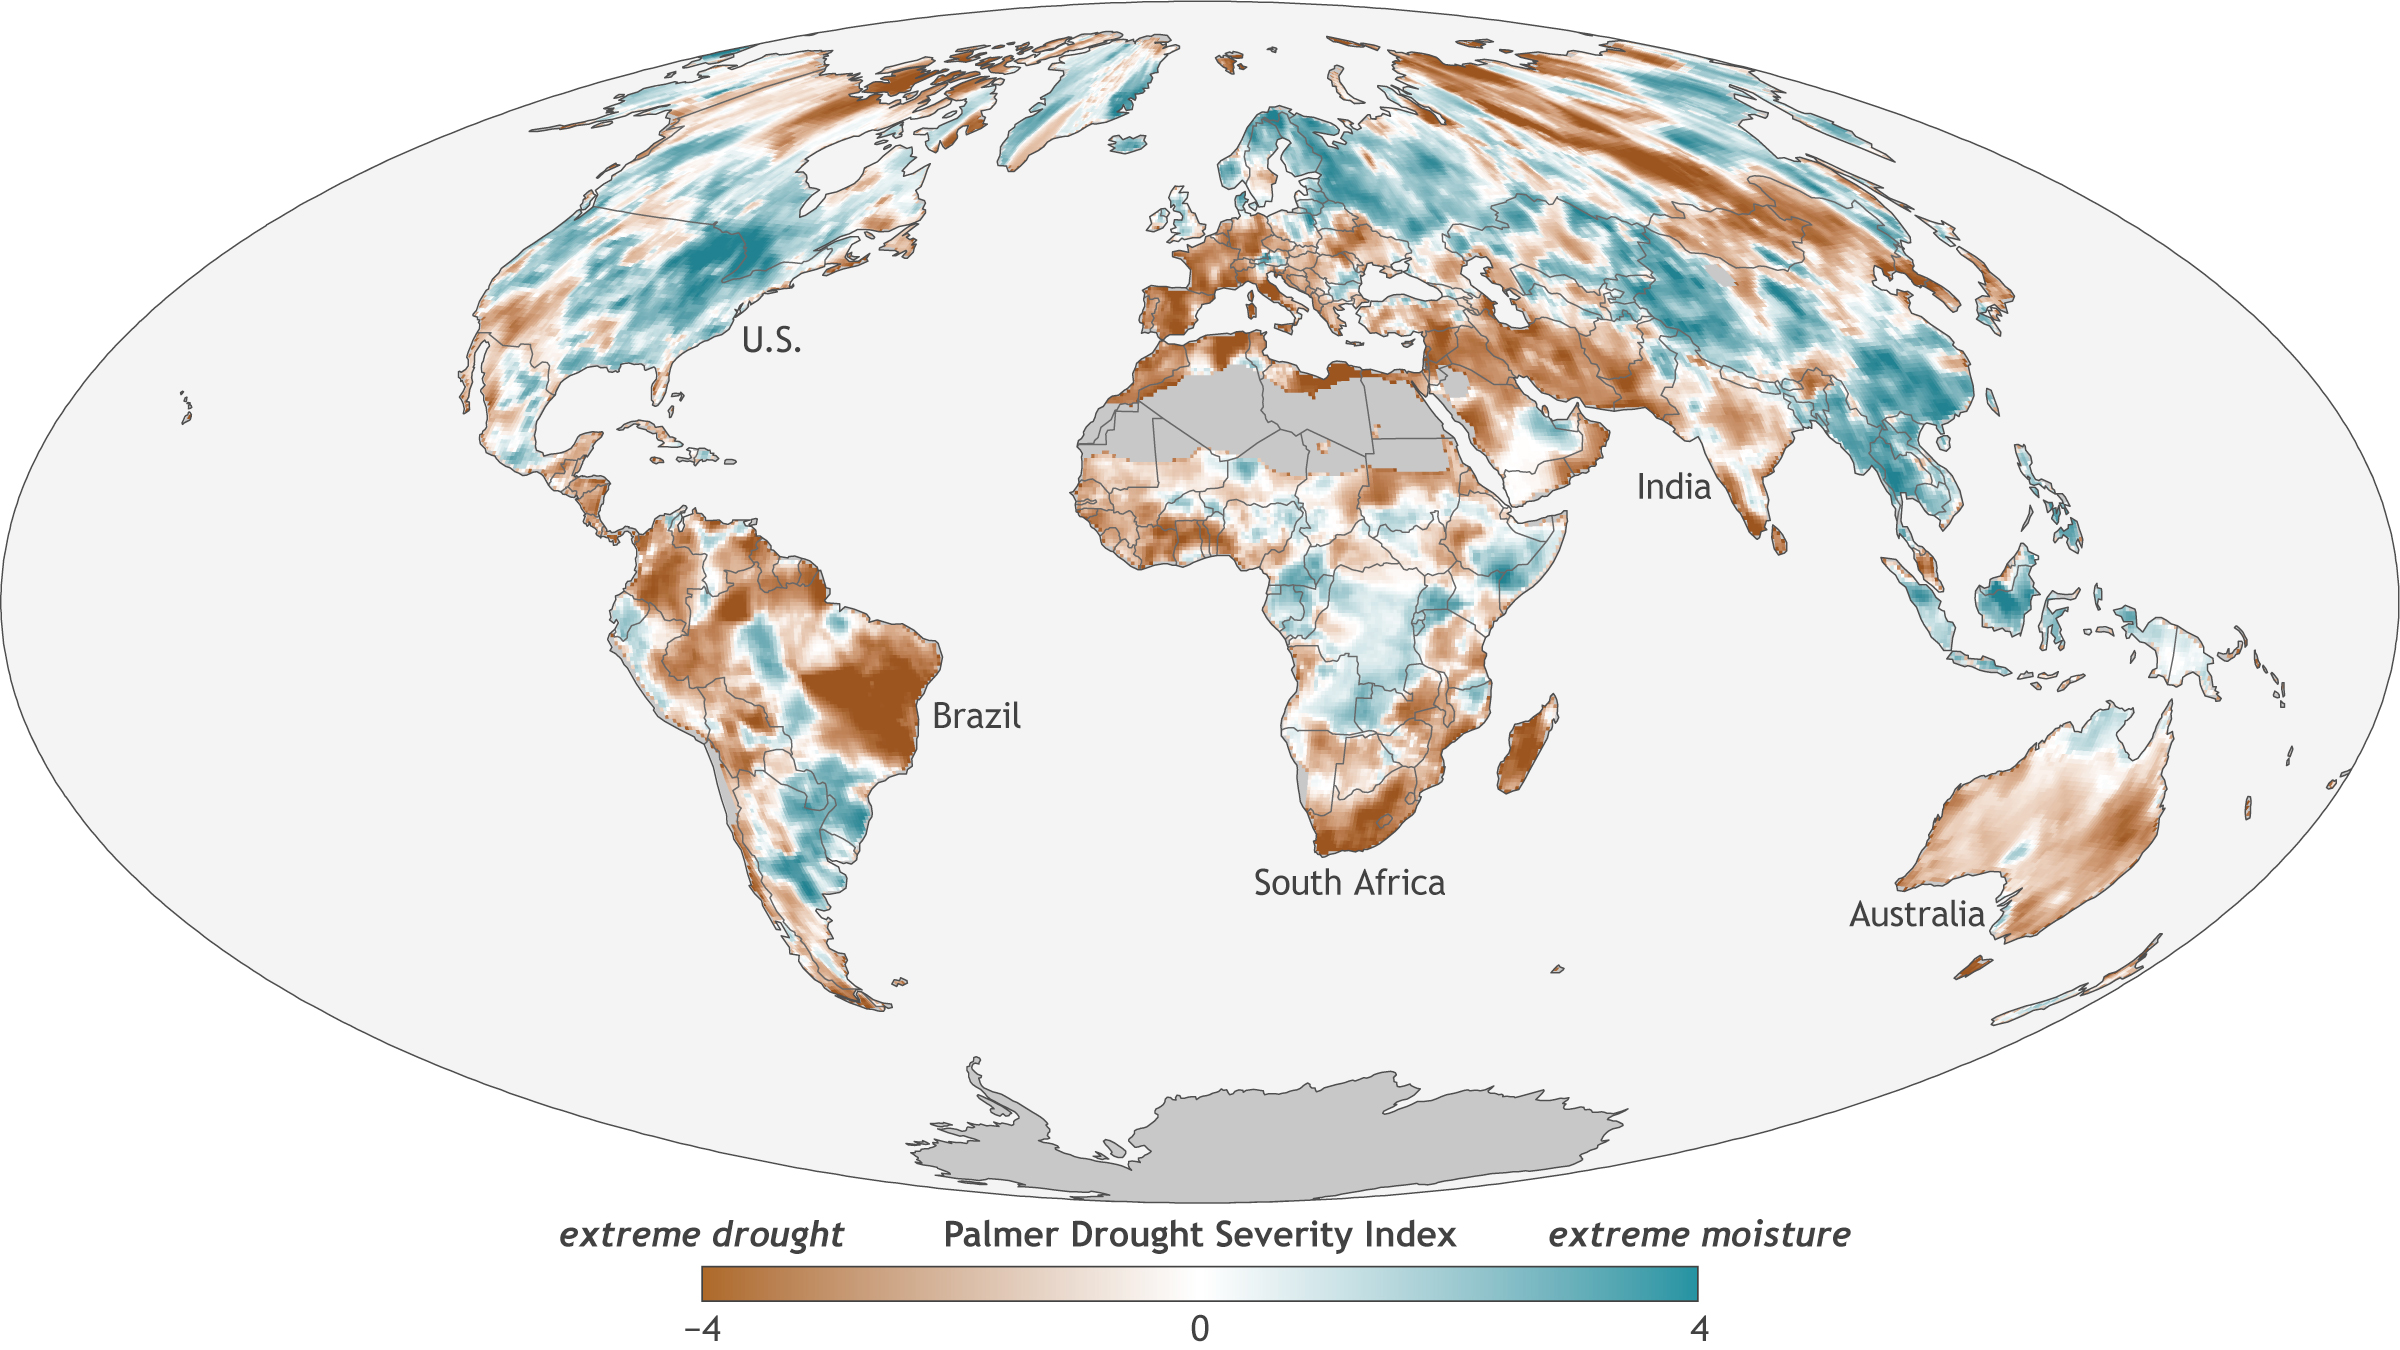 Global drought patterns in 2017